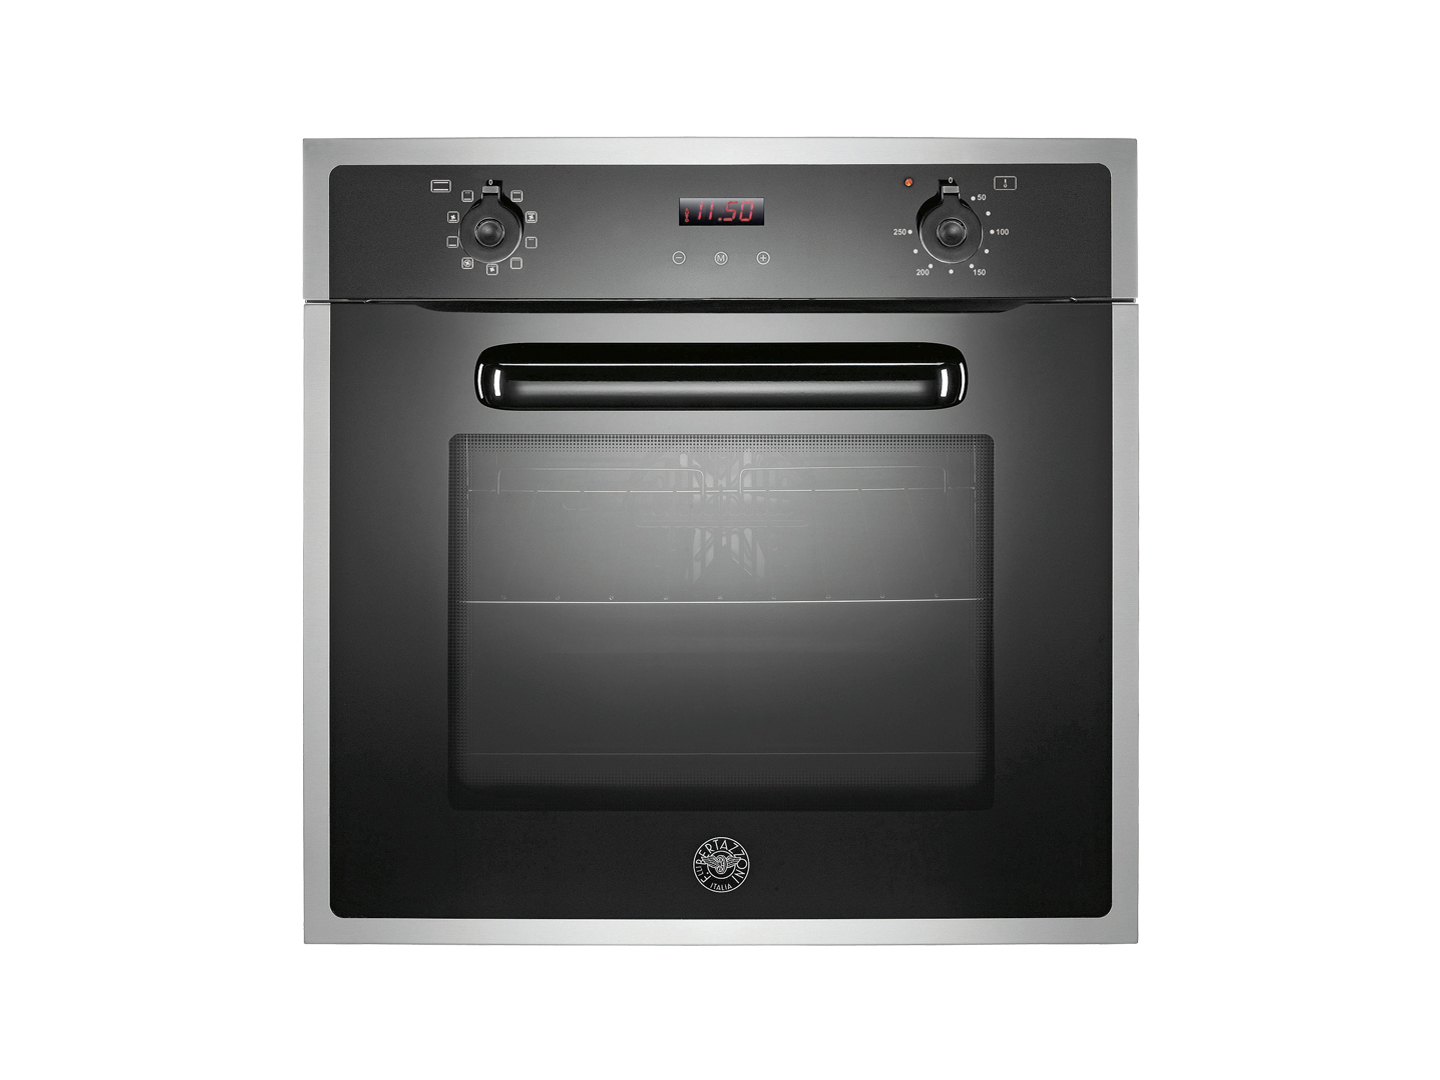 60 single oven XA | Bertazzoni - Black